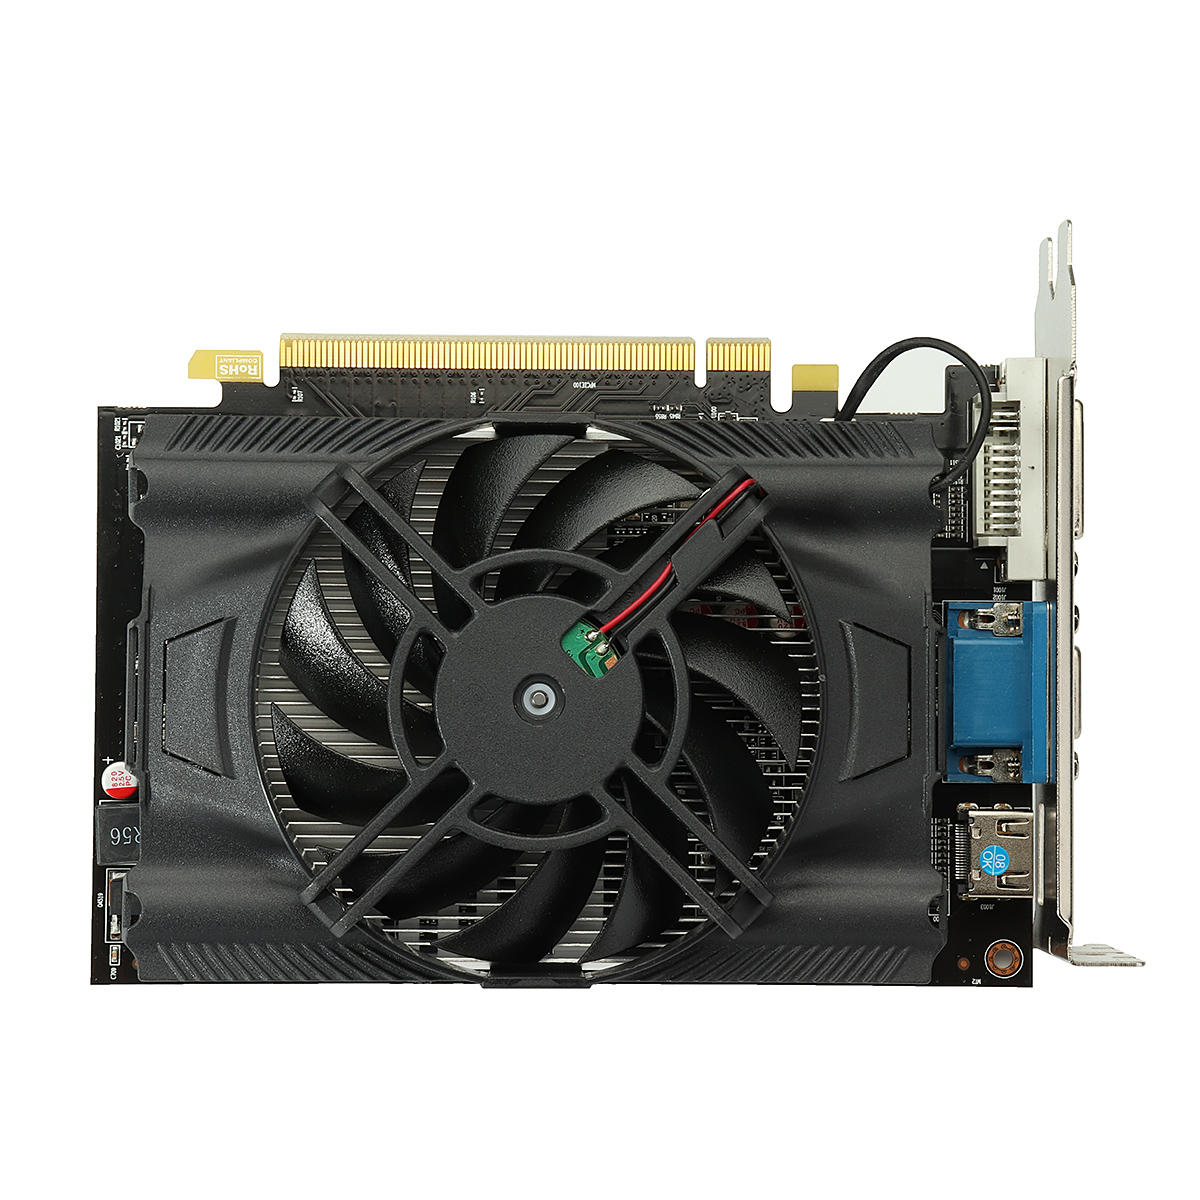 R7 250 GPU 2G DDR5 128bit Graphics Card Gaming Desktop PC Video Graphics Cards support VGA/DVI/HDMI r7 250 240 gpu vga cooler video card fan for sapphire r7 250 2g d5 r7 240 2g d3 graphics cooling